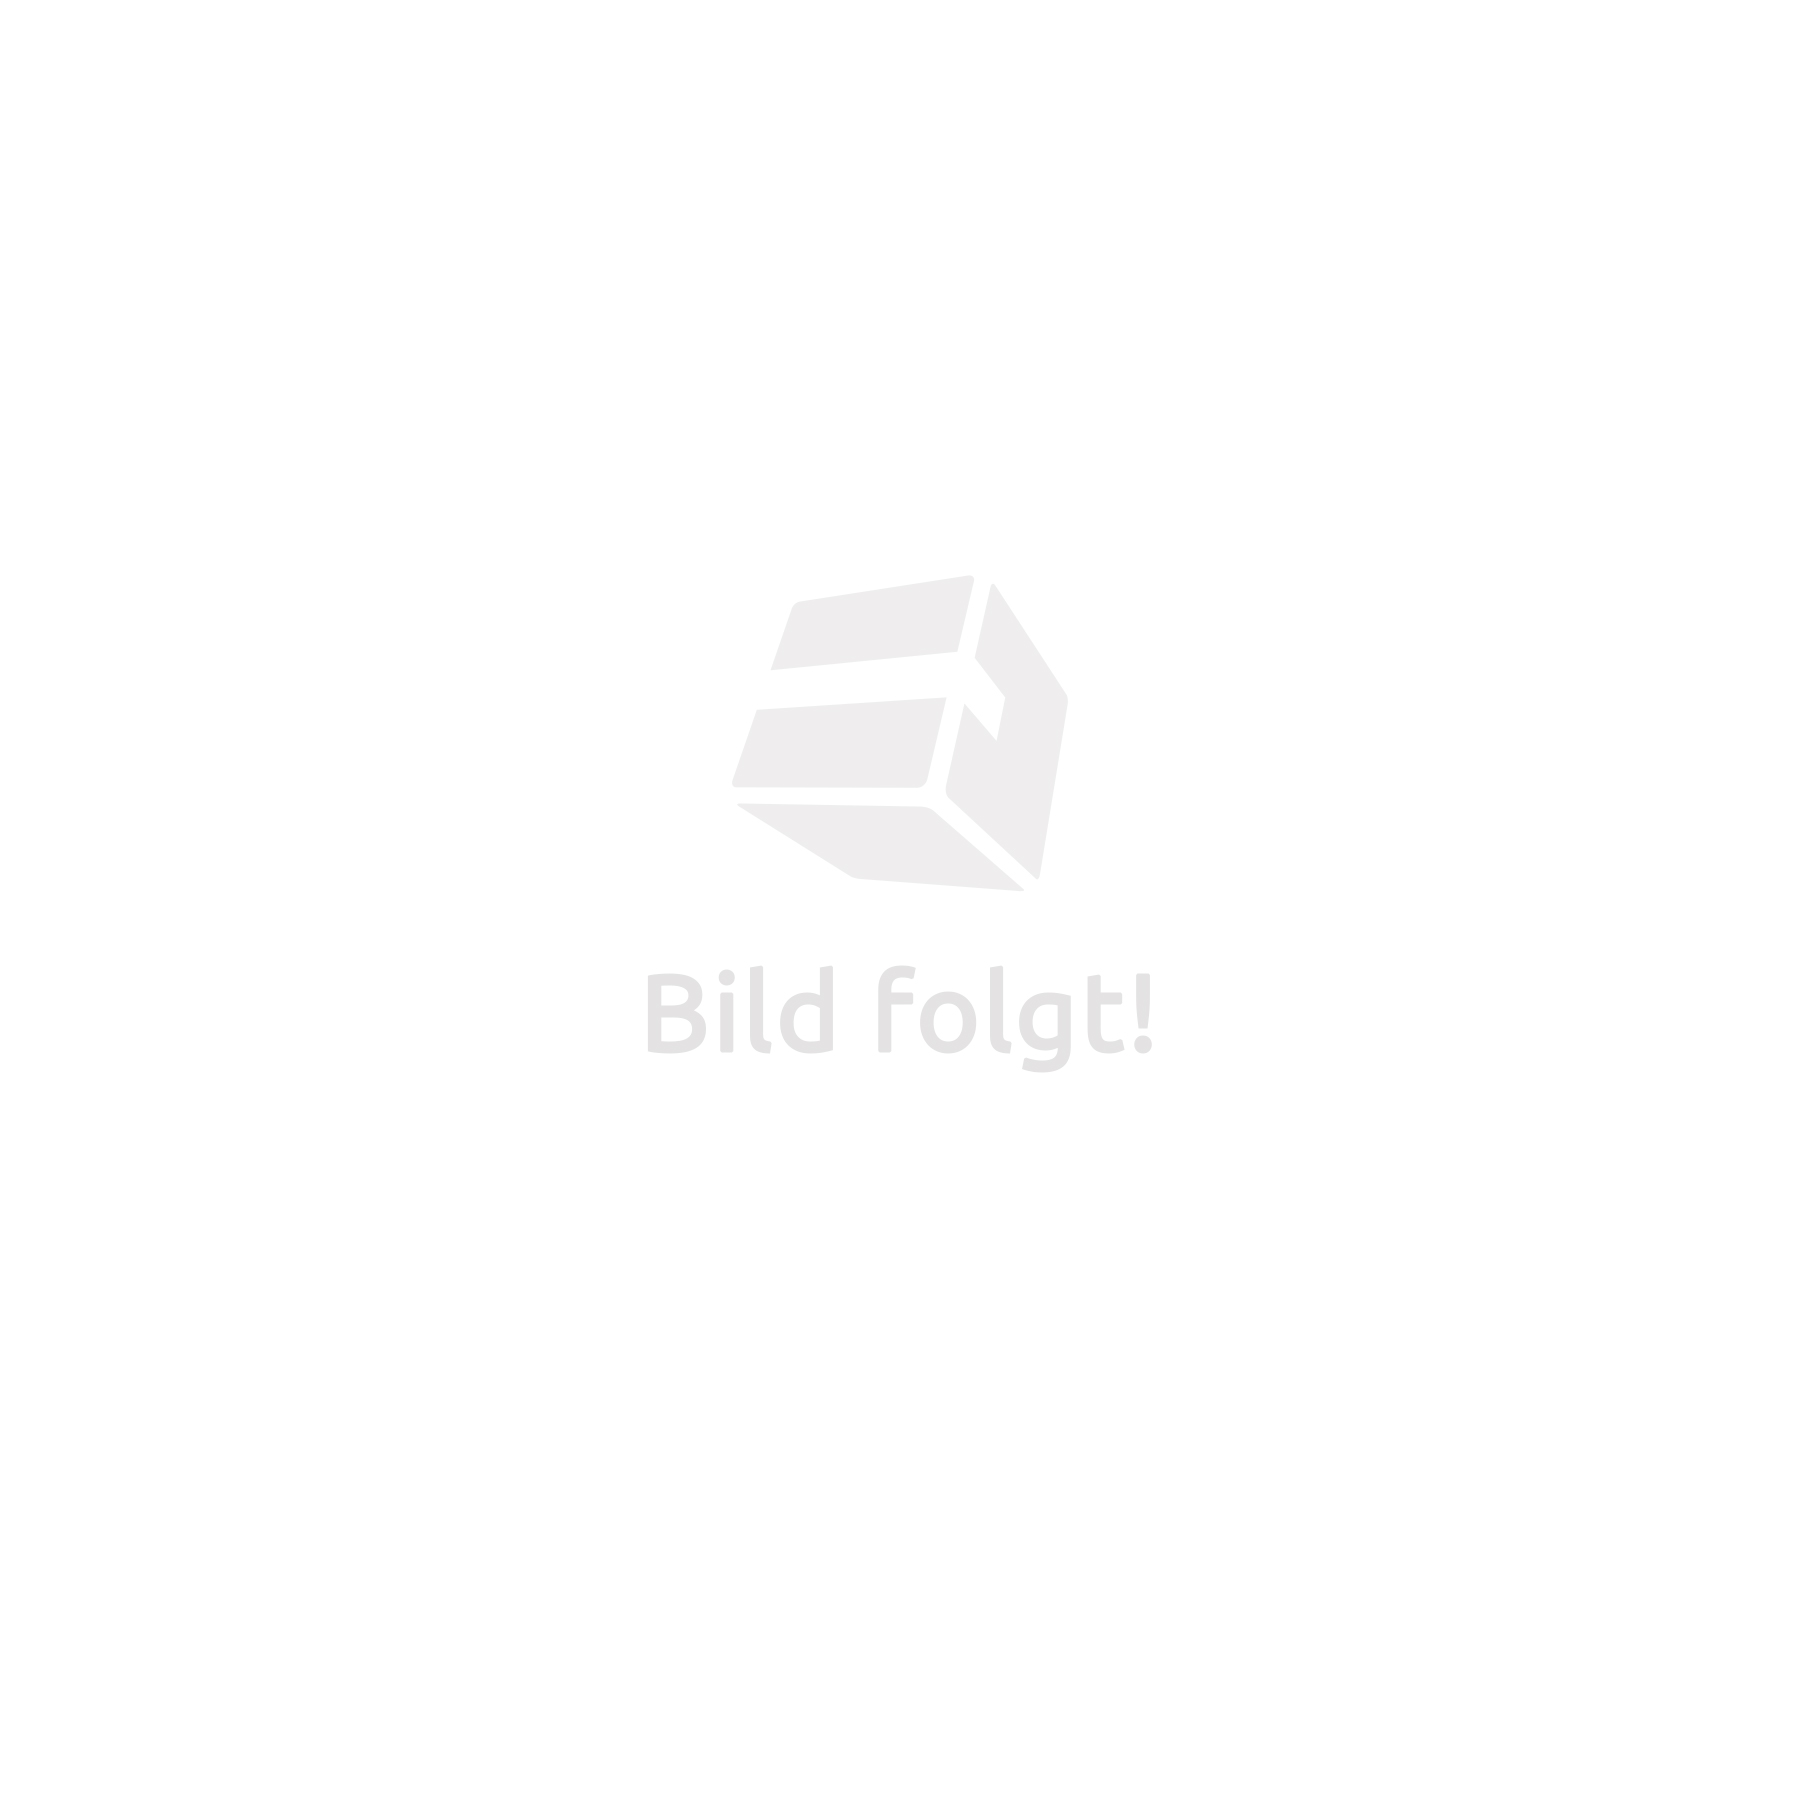 Lot de 3 Tables à tapisser pliables Aluminium